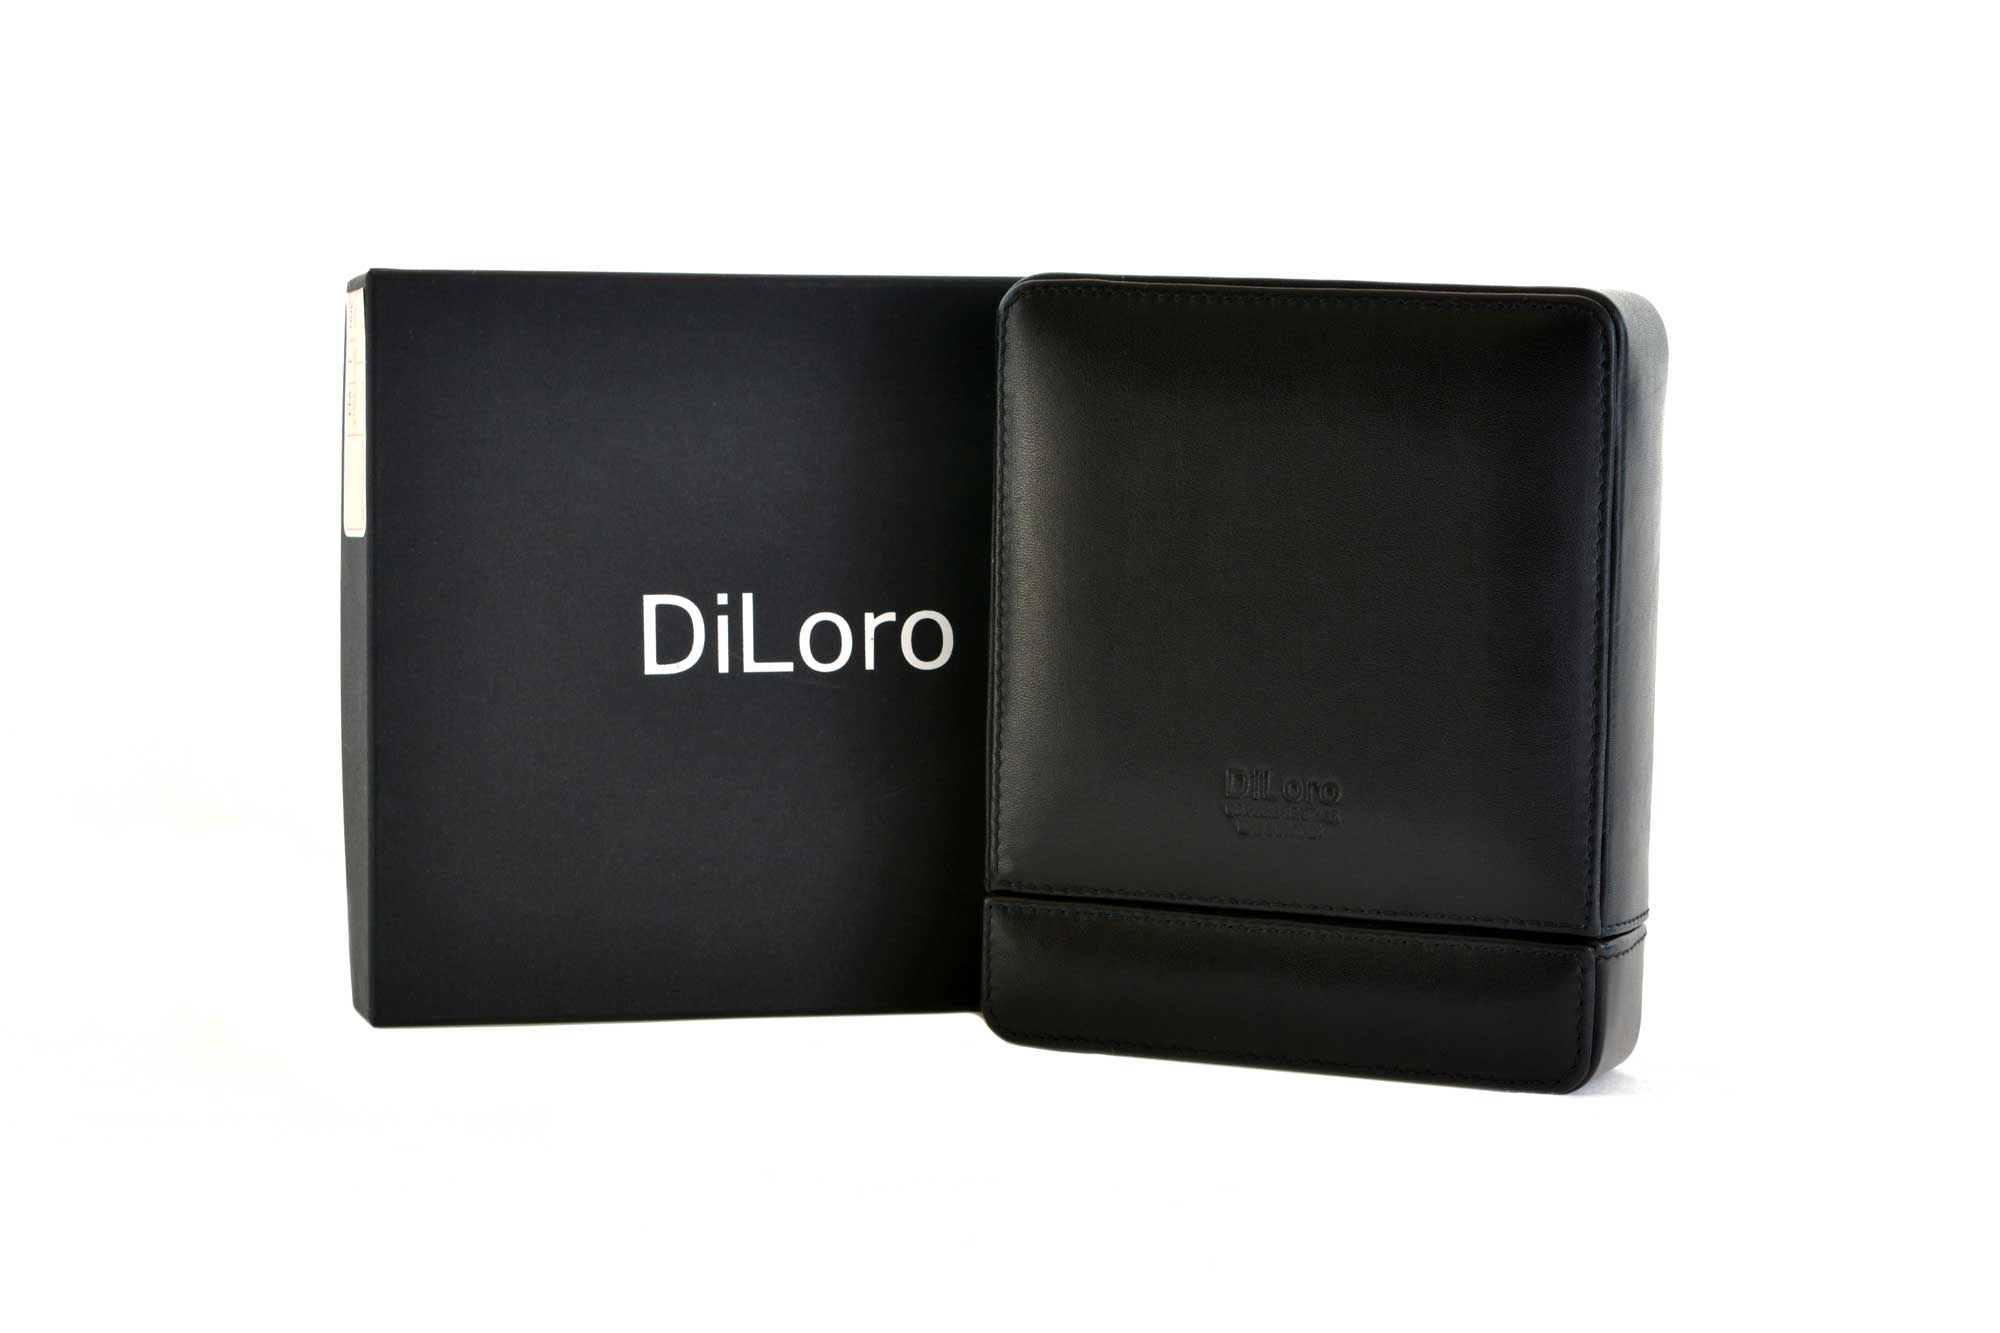 10d5f7bb9af DiLoro Italian Leather Double Travel Watch Case Holder Black - Gift Box